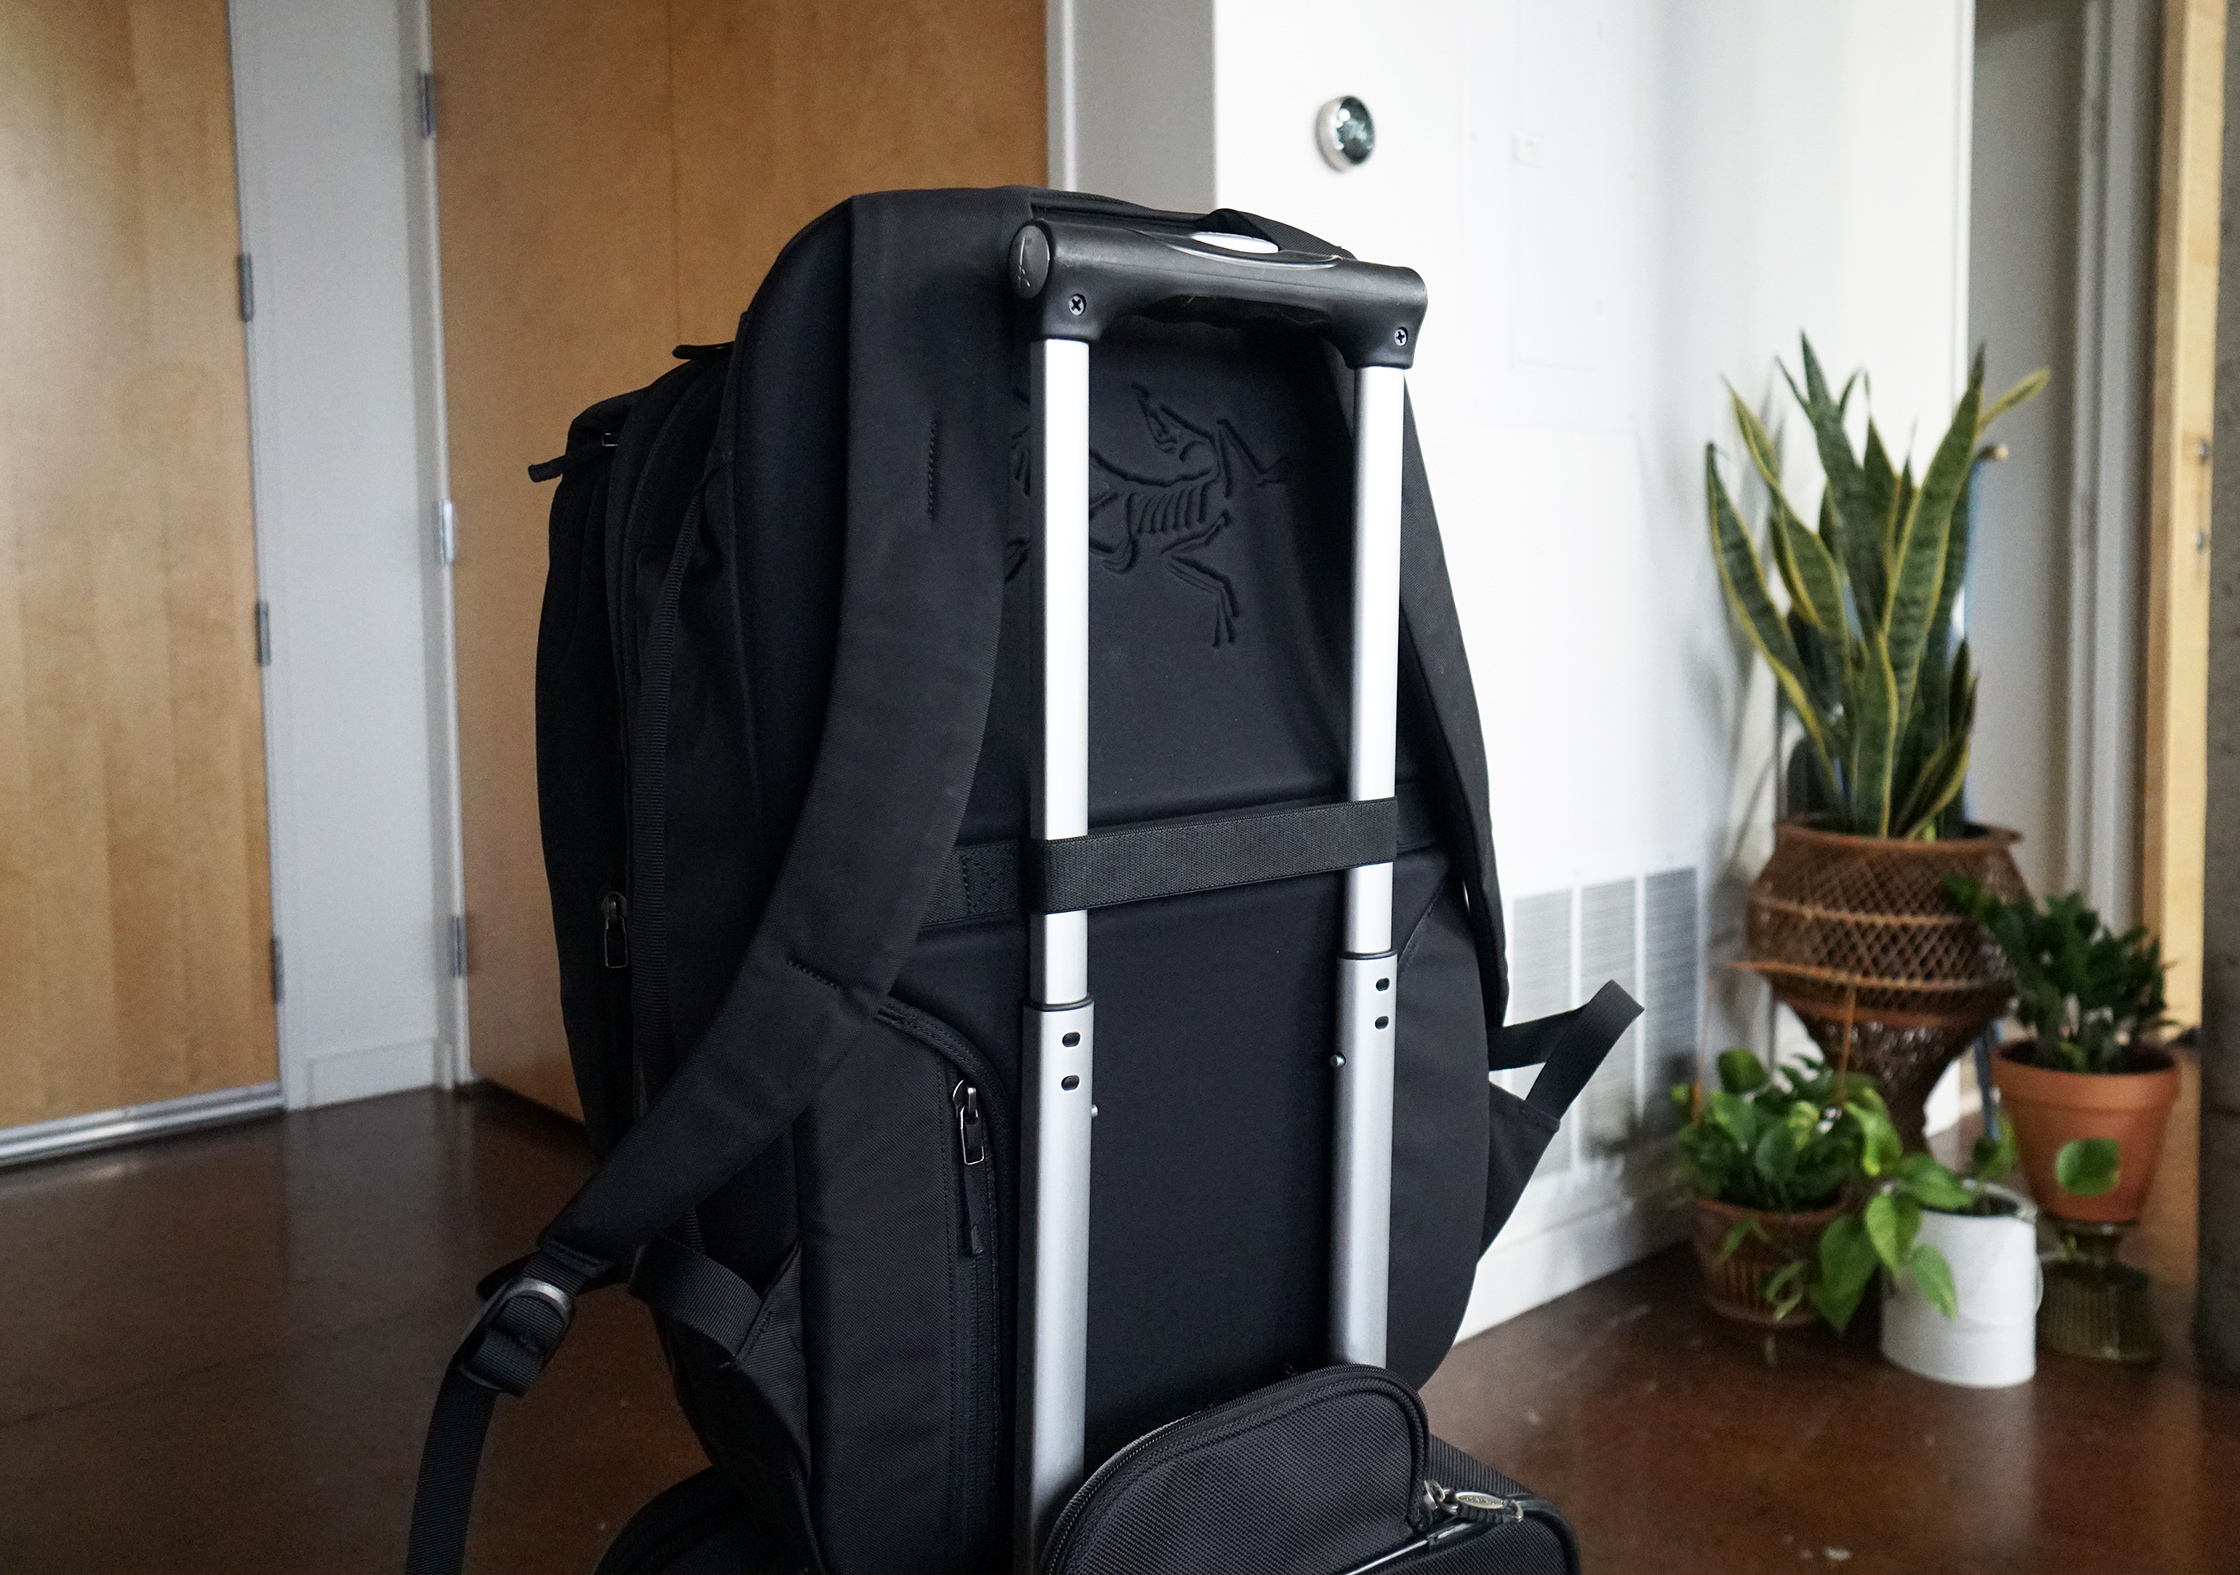 Arc'teryx Blade 28 Backpack Luggage Pass-through